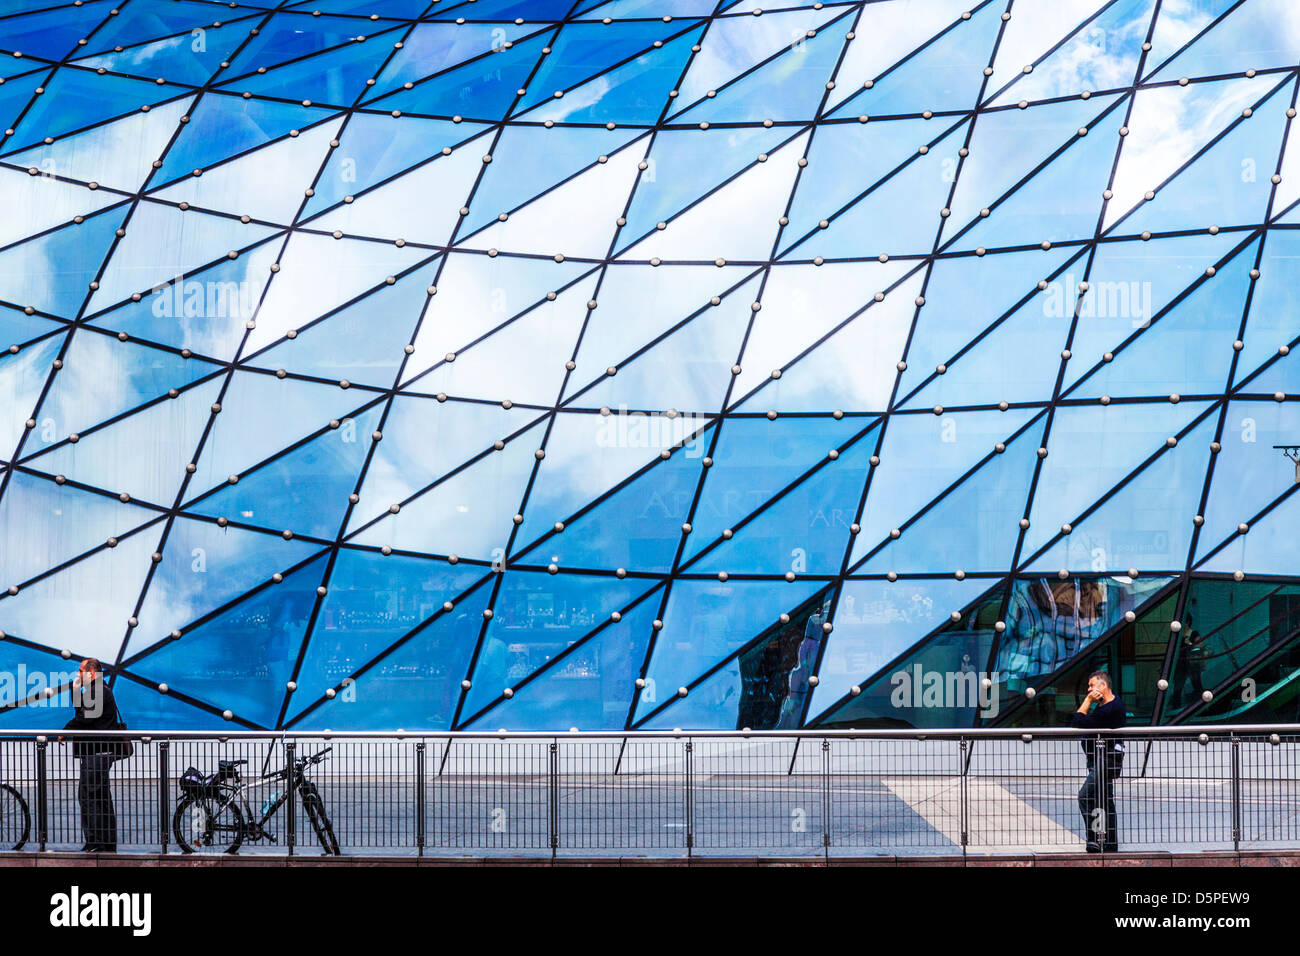 The futuristic glass roof of the Złote Tarasy (Golden Terraces) shopping mall in central Warsaw, Poland. - Stock Image